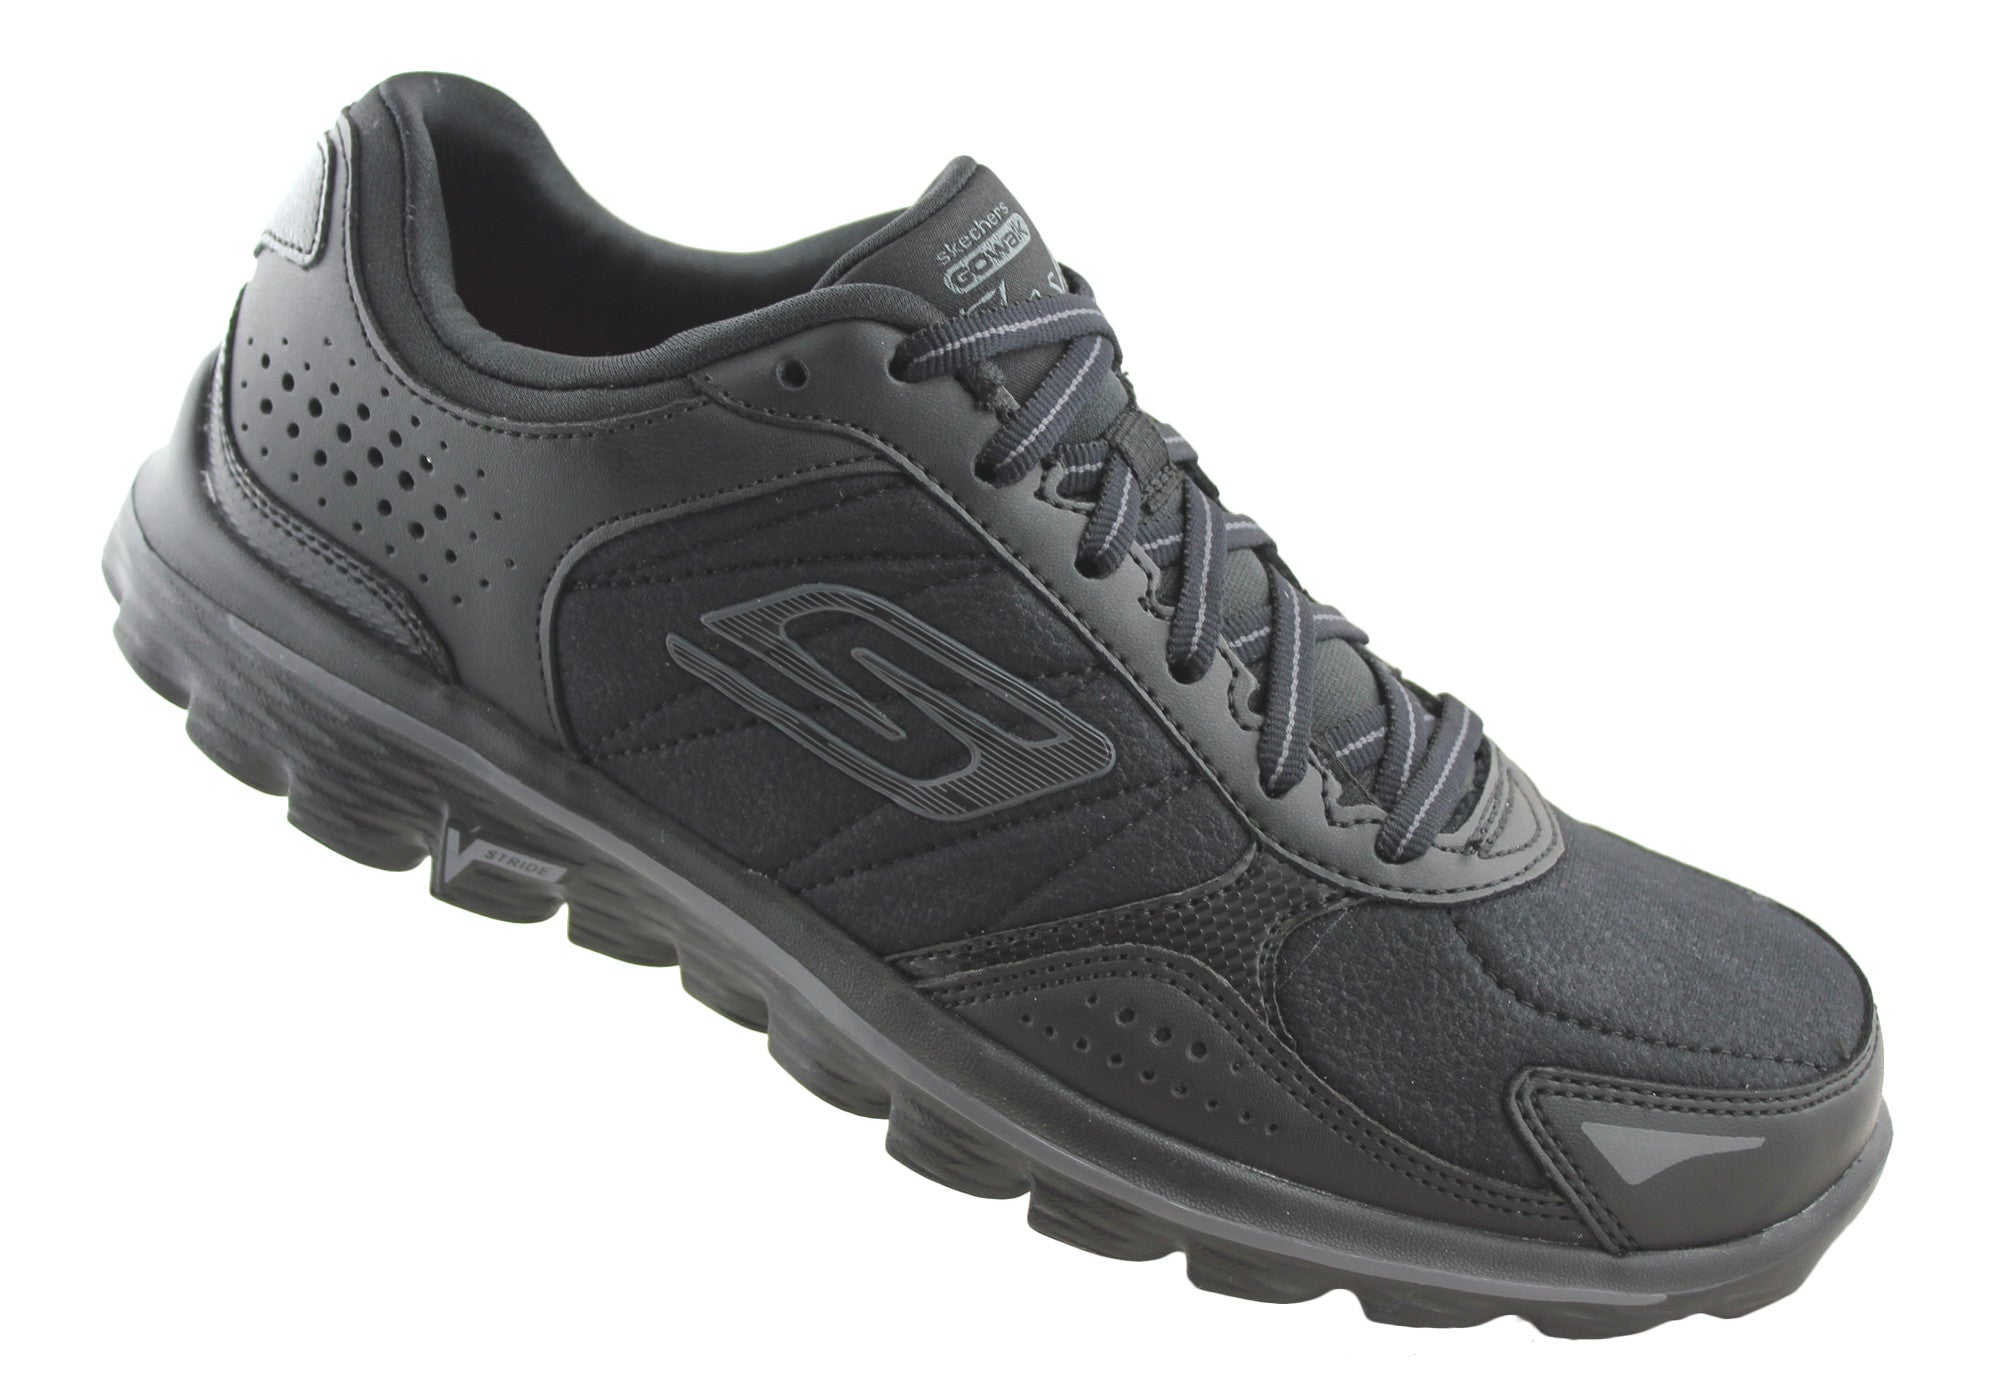 Skechers Womens Go Walk 2 Flash LT Lace Up Shoes